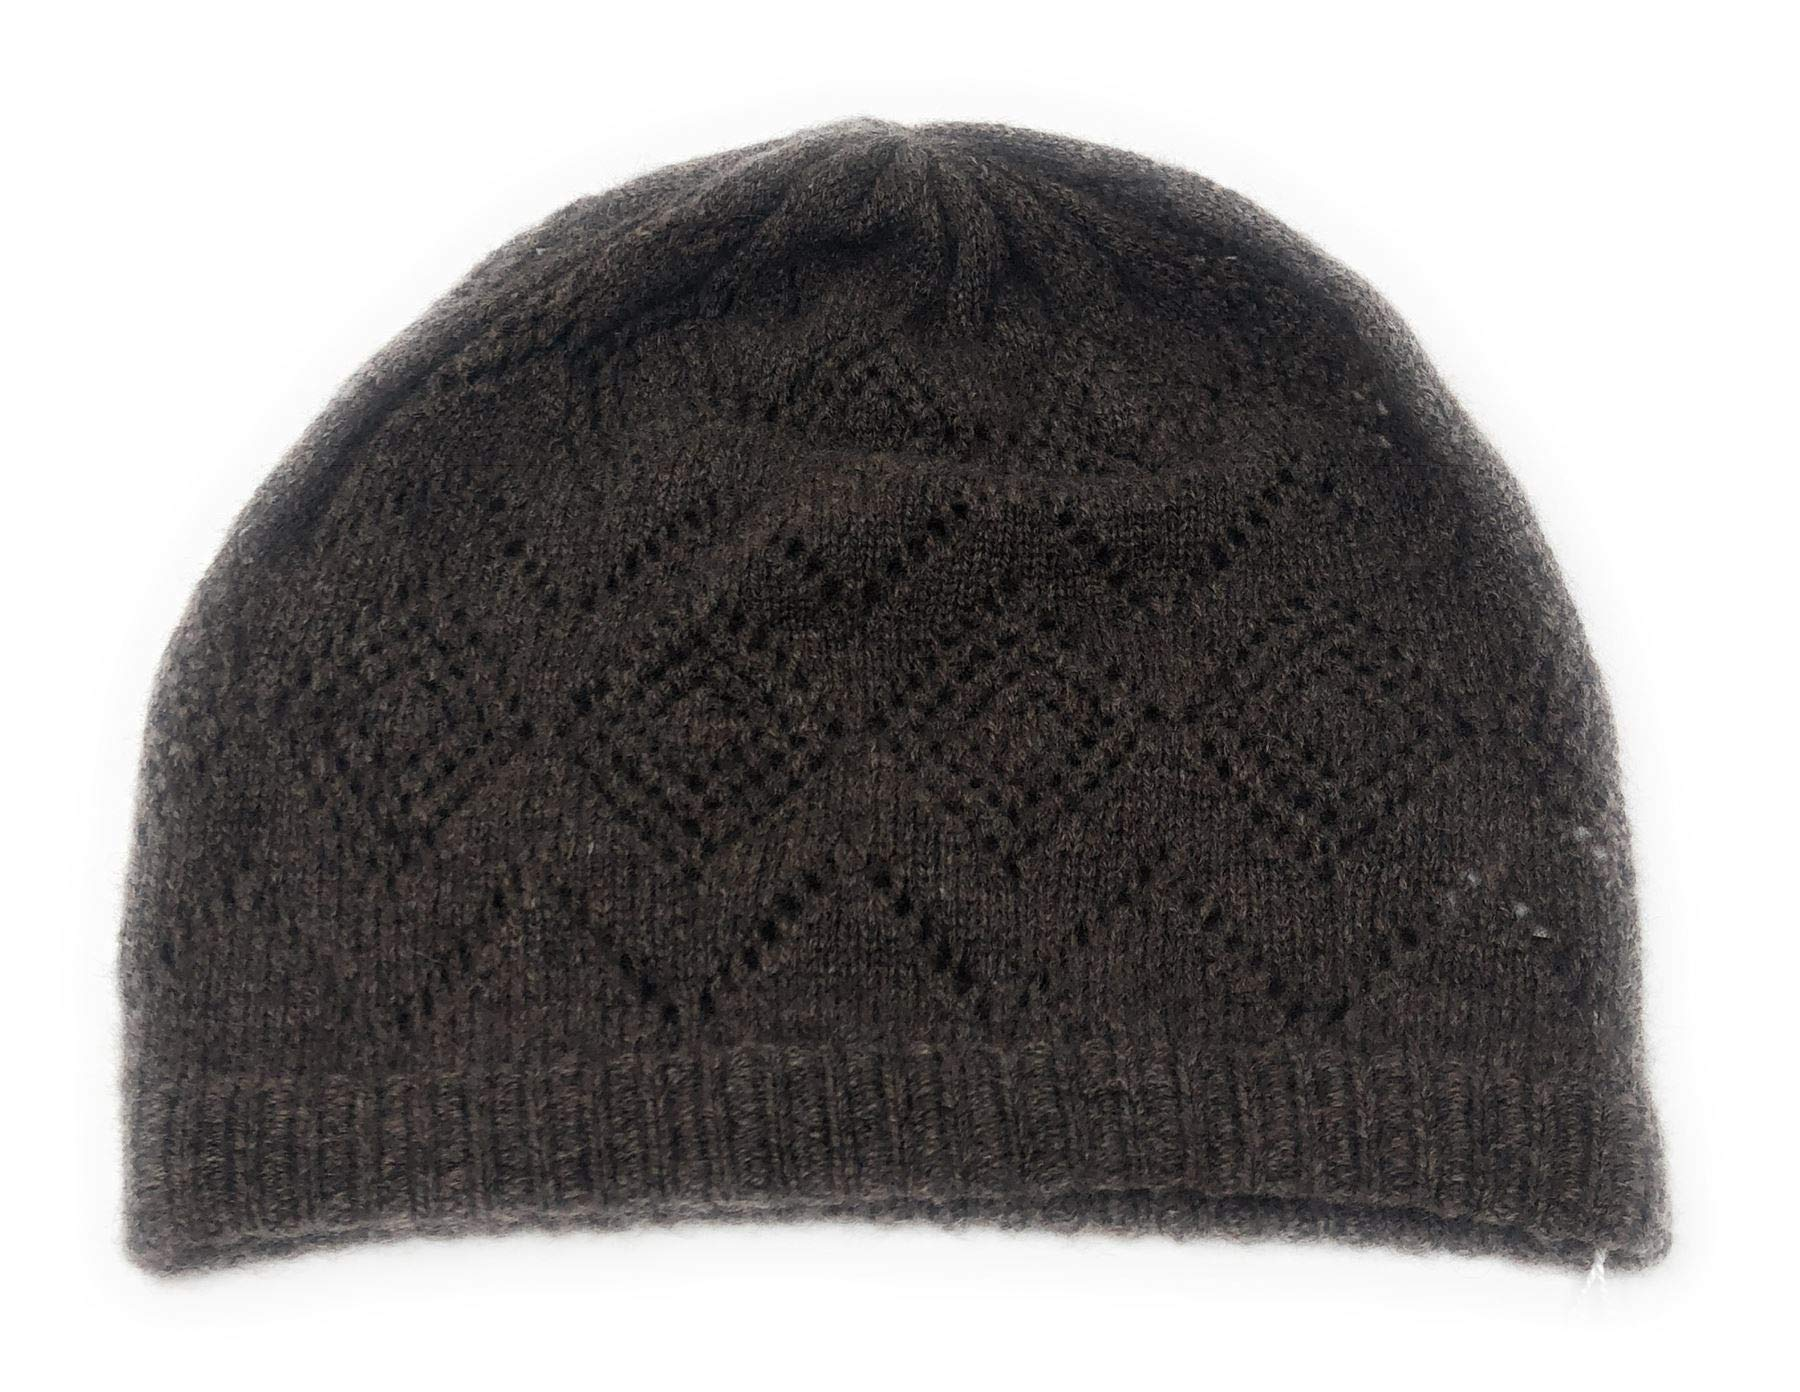 100% Cashmere Ladies Lacy Knit Beanie Hat - Chocolate Brown